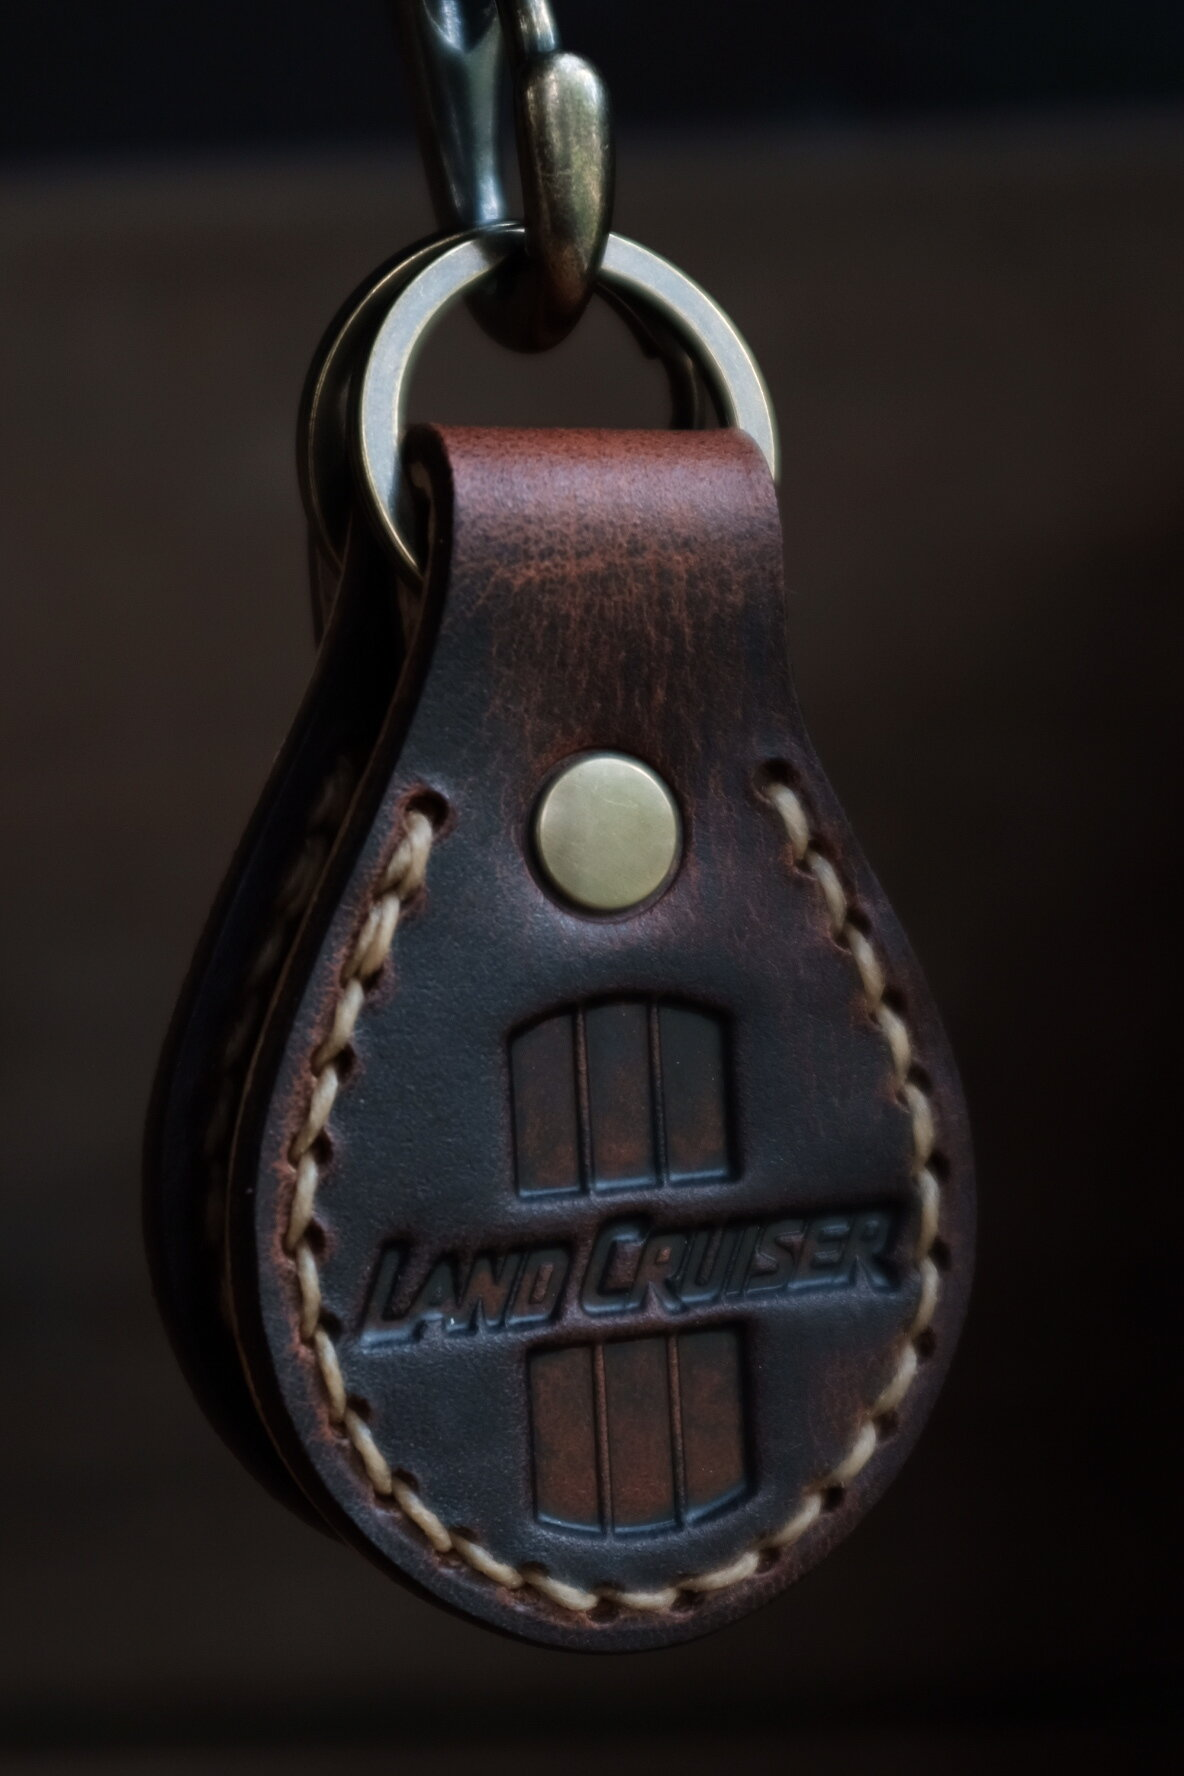 Leather Products - Fobs, console inserts, coozies, travel planners, wallets